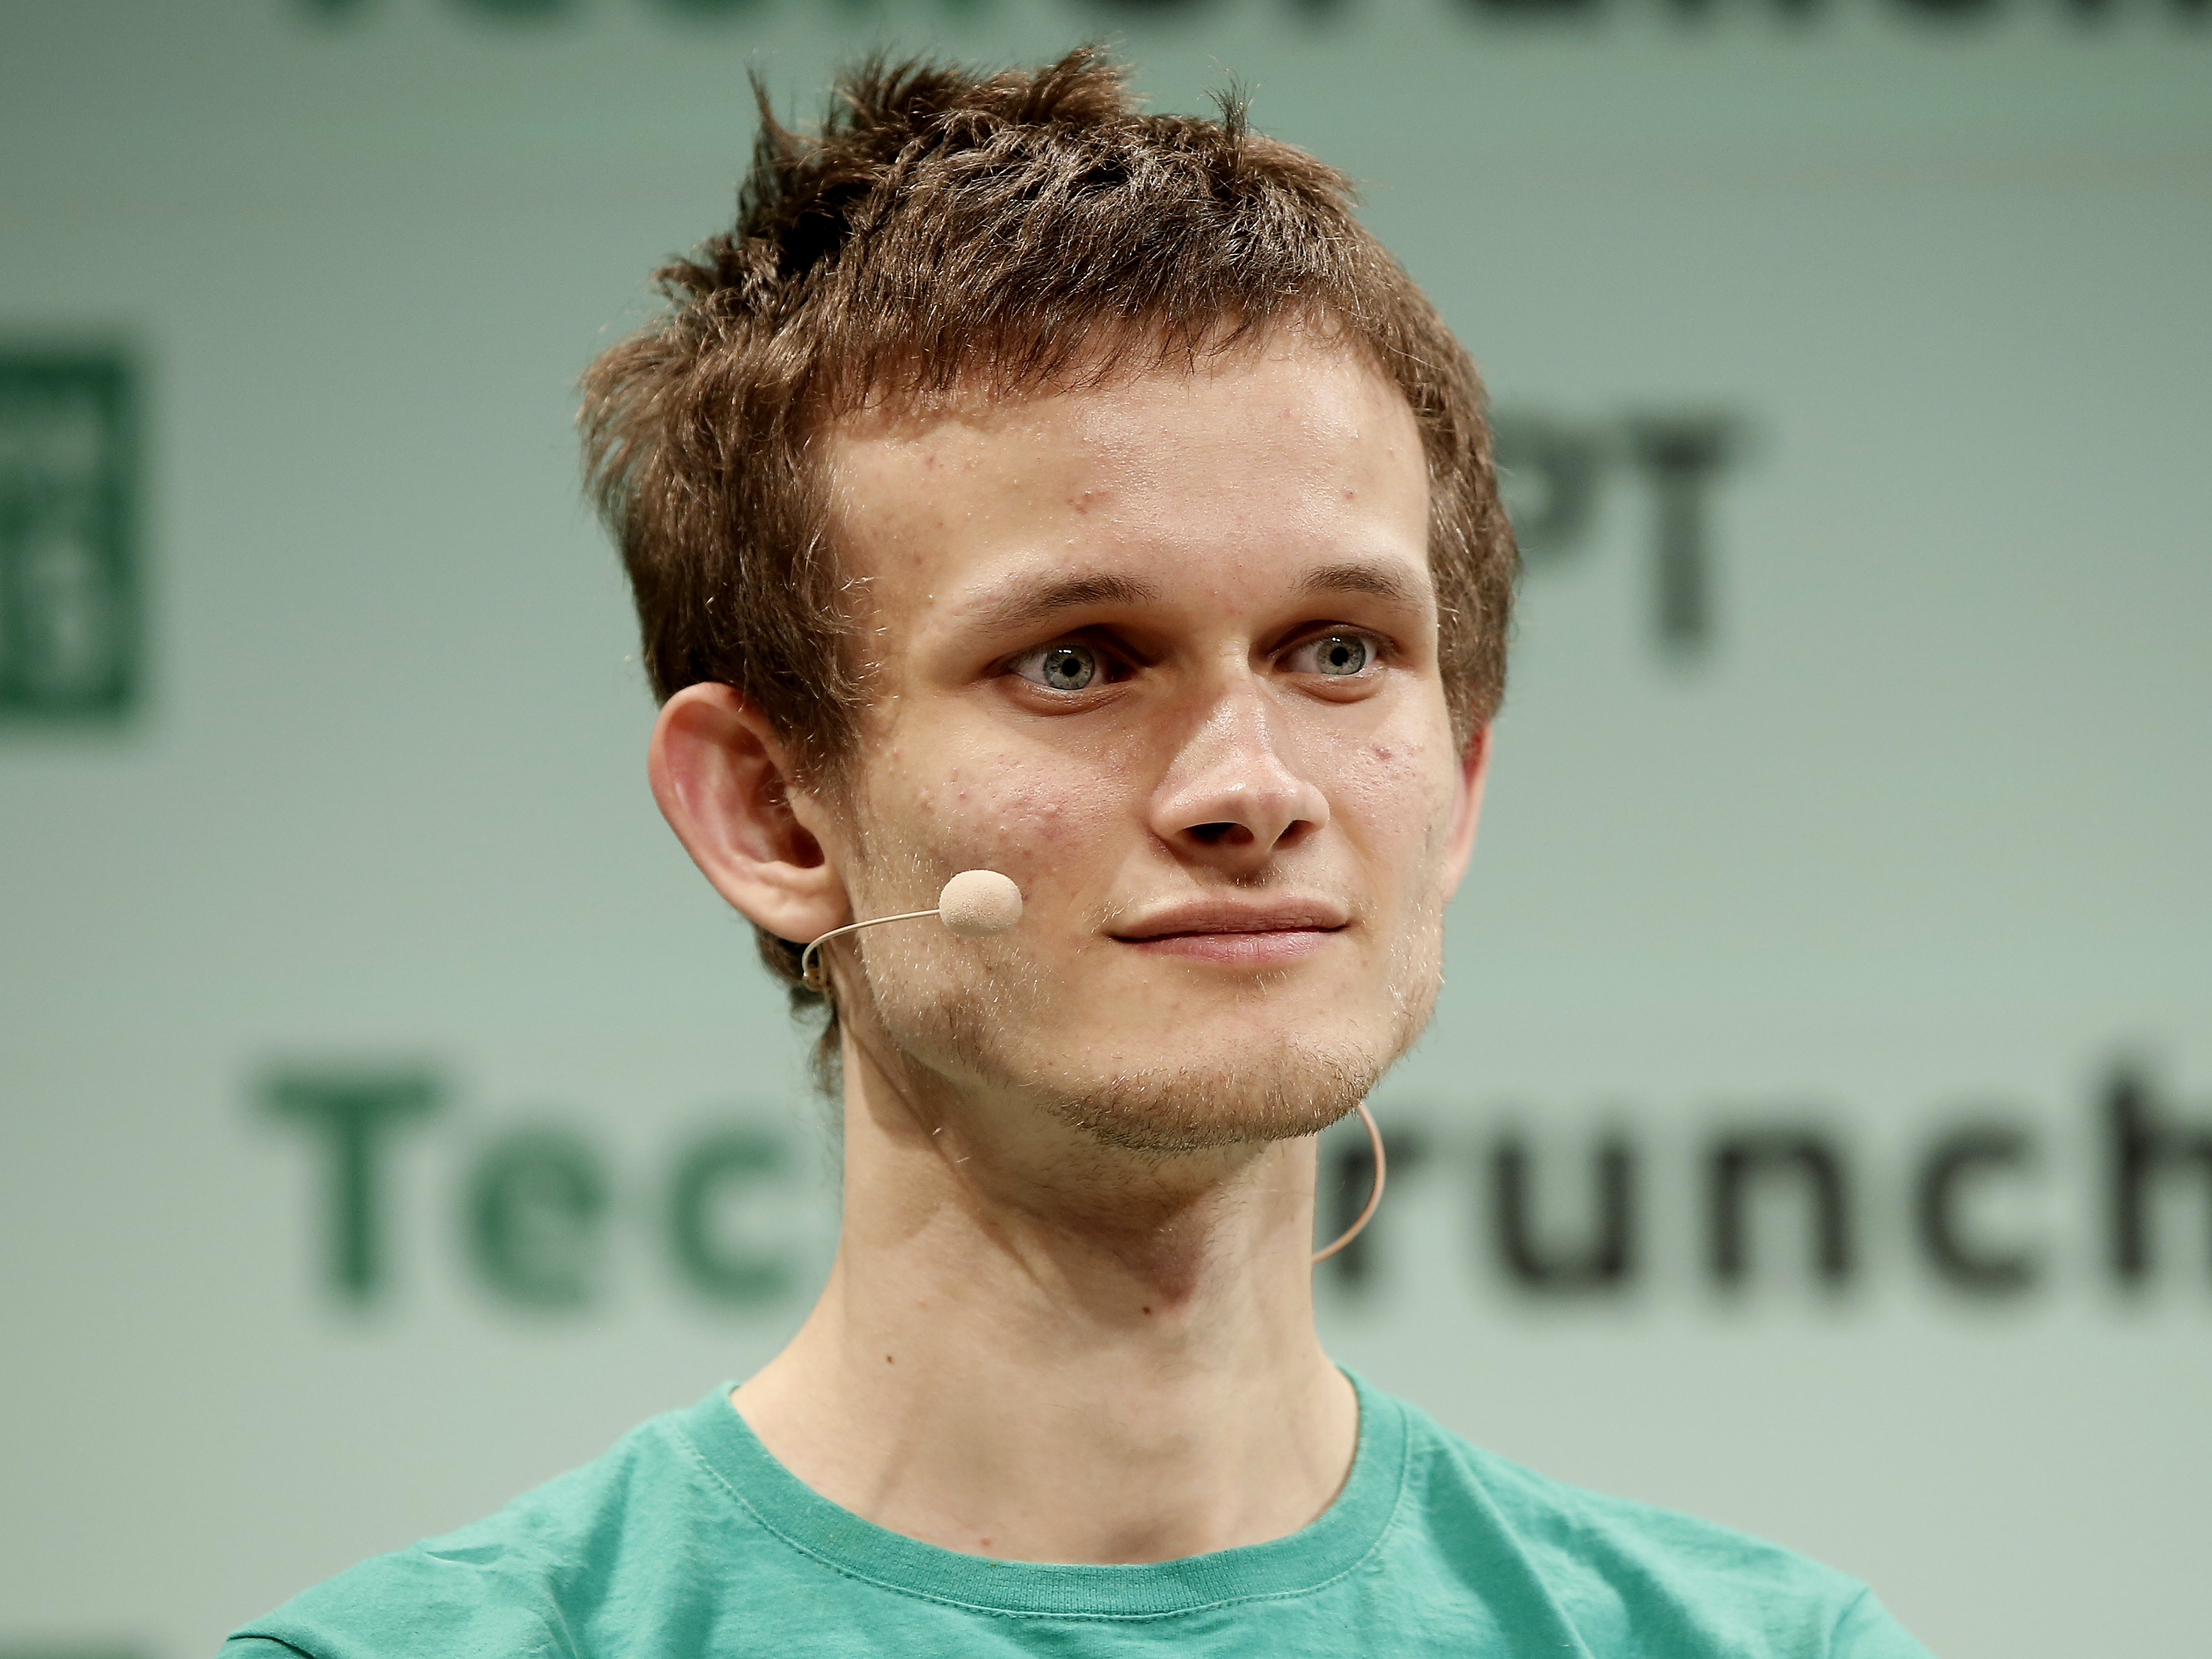 Ethereum's Coders Race to Recover Their Stolen $53 Million